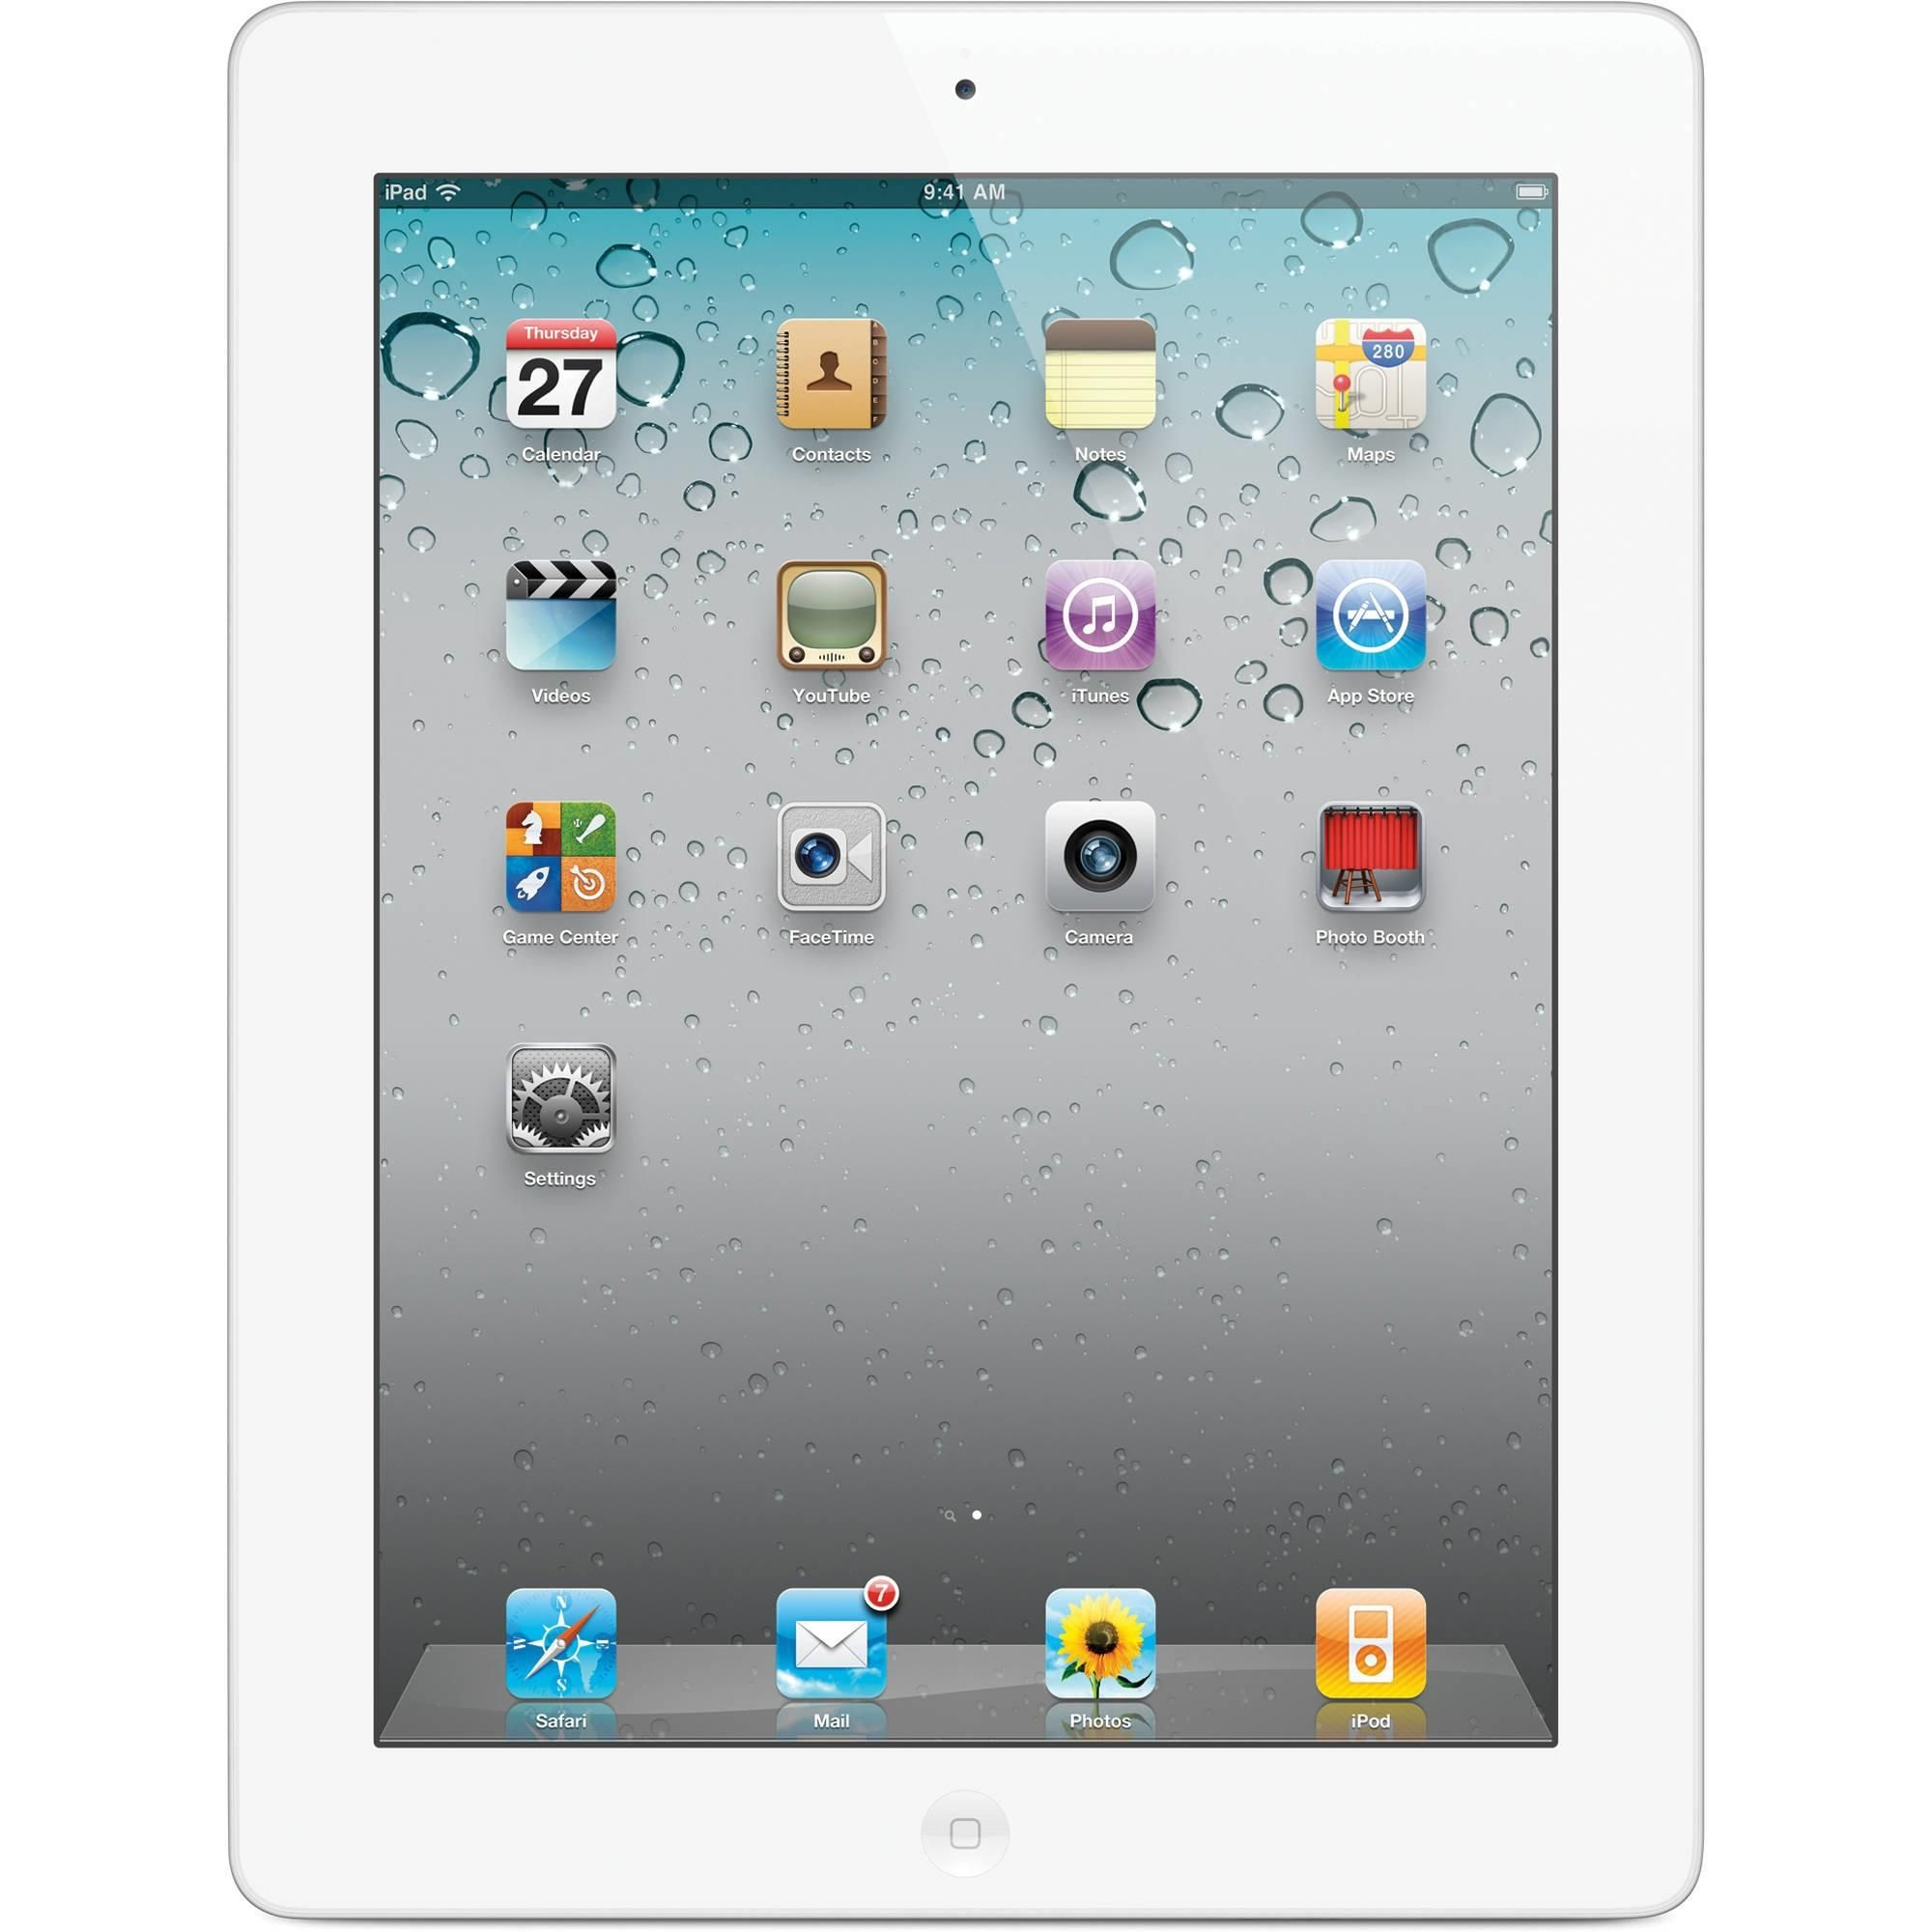 iPad 2 (2011) White 16GB (Wifi) Educational apps for